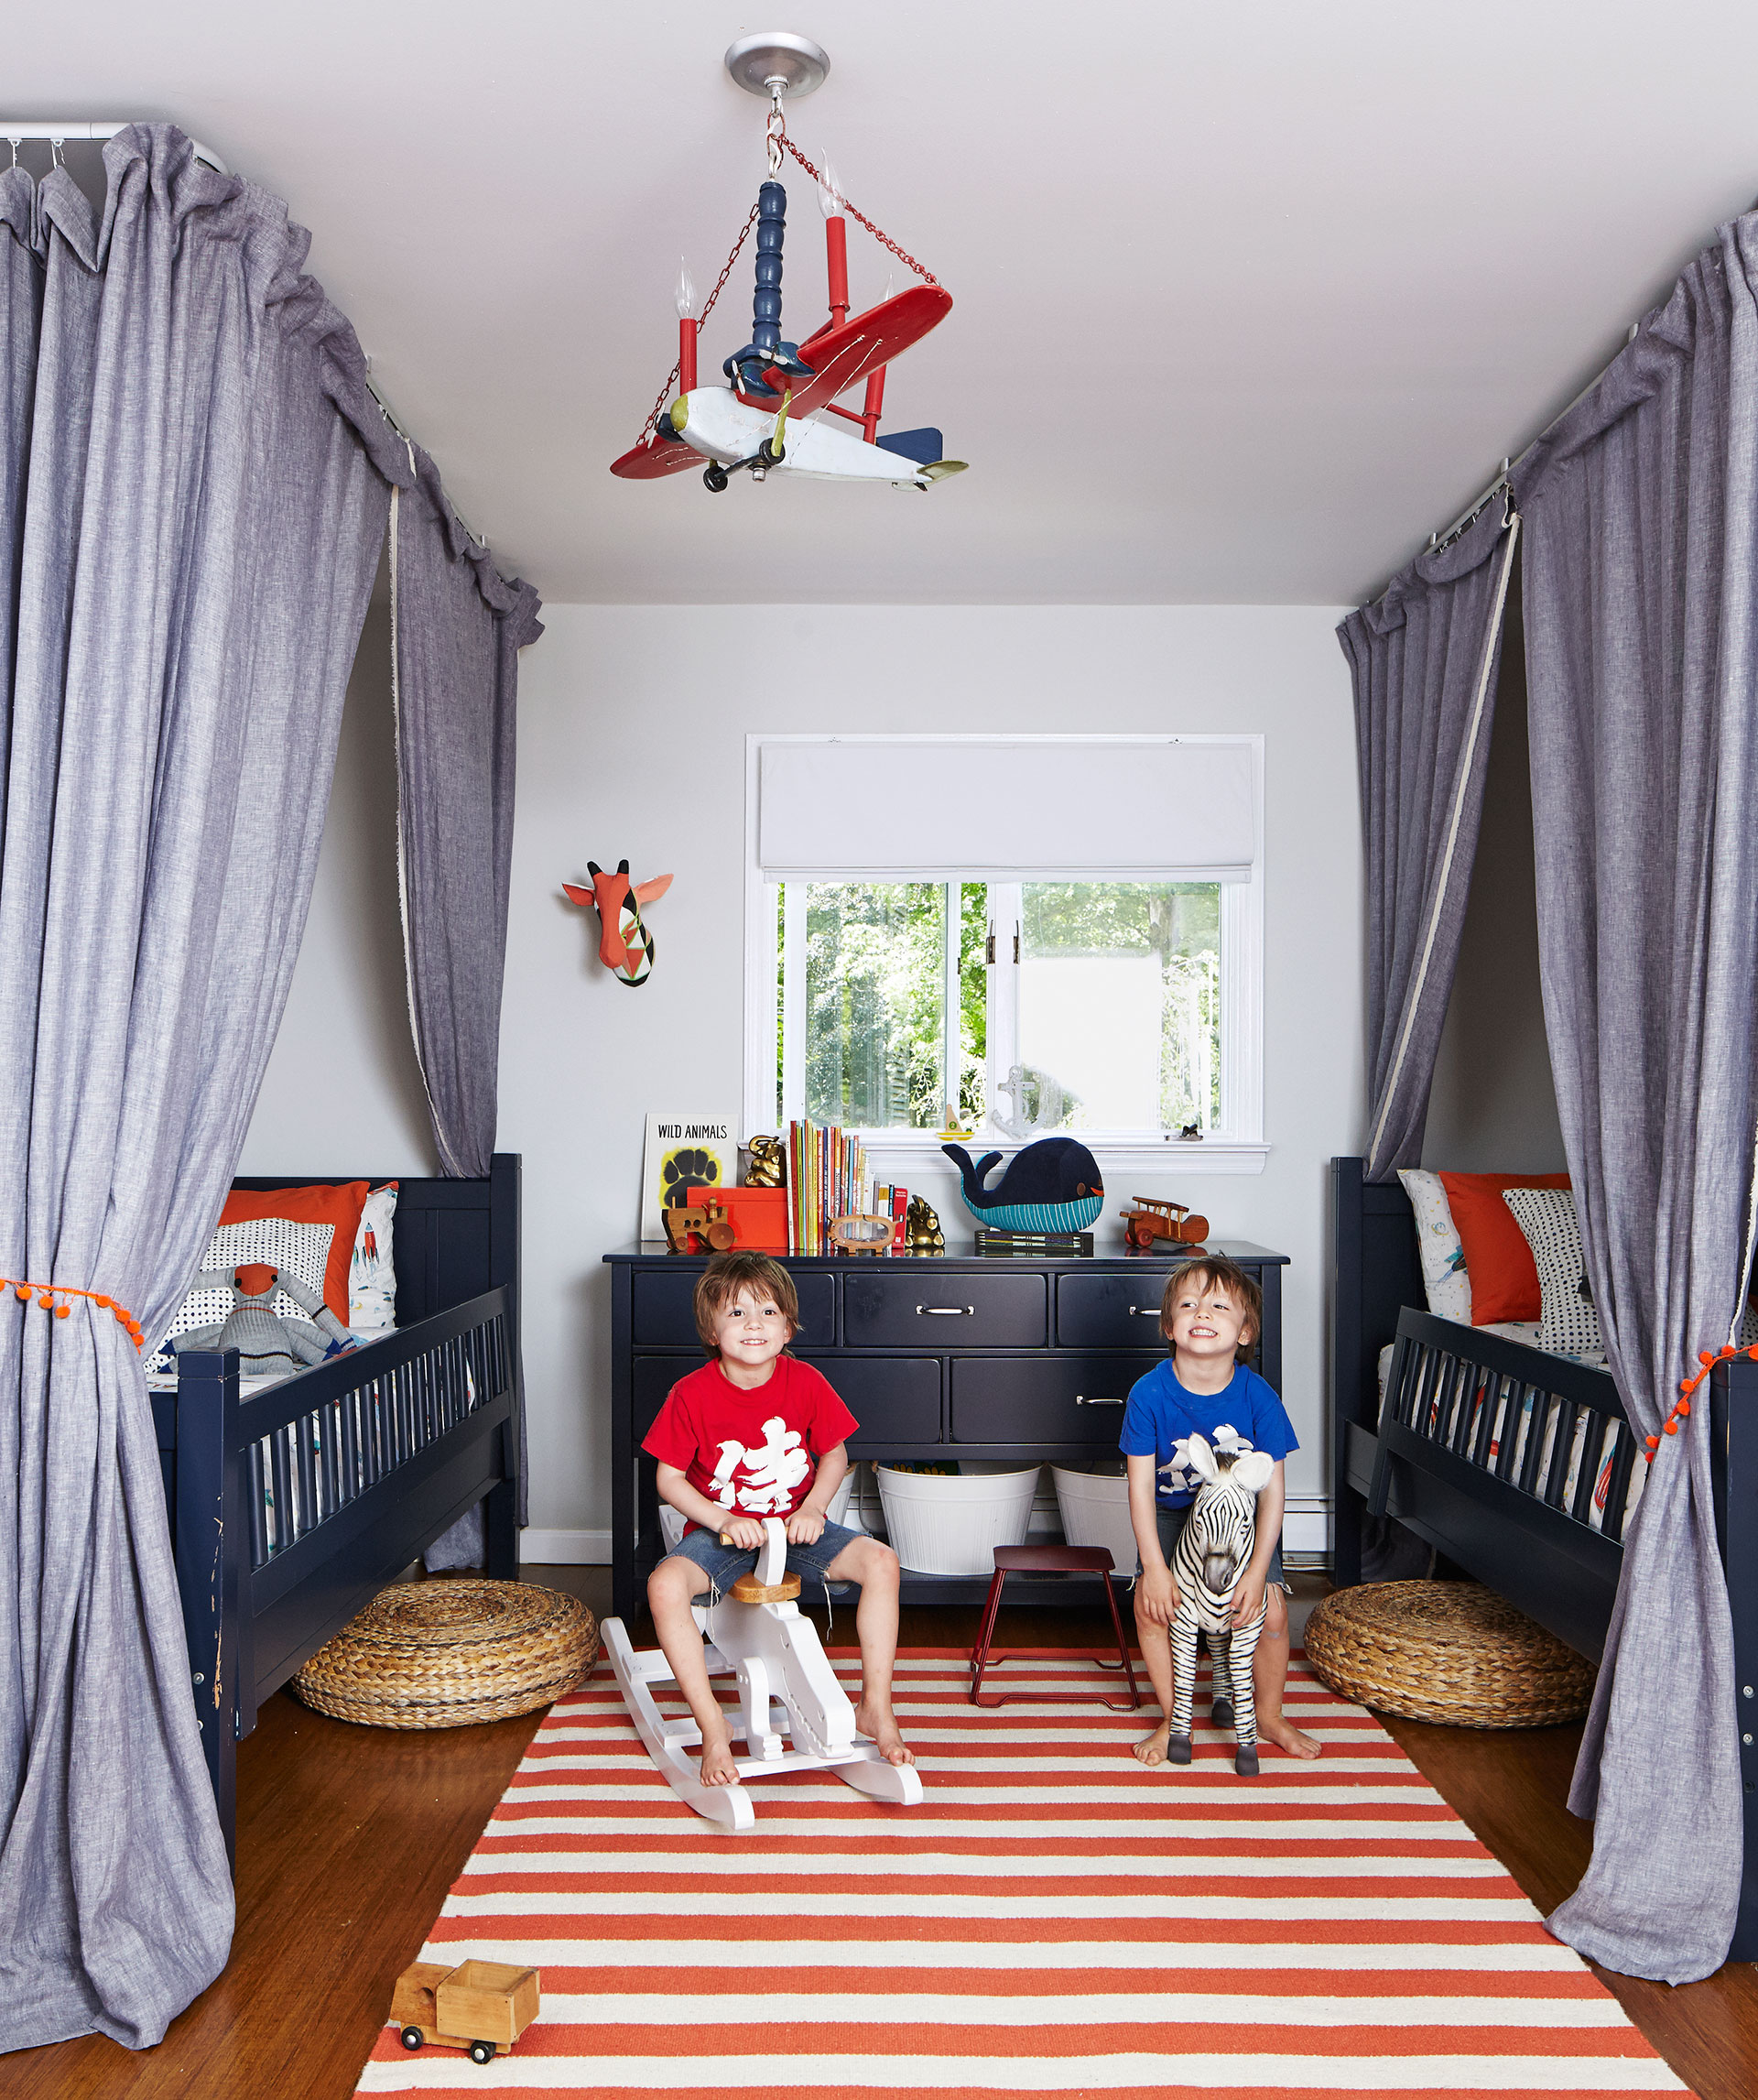 Next Childrens Bedroom Accessories Kids Room Ideas Design And Decorating Ideas For Kids Rooms